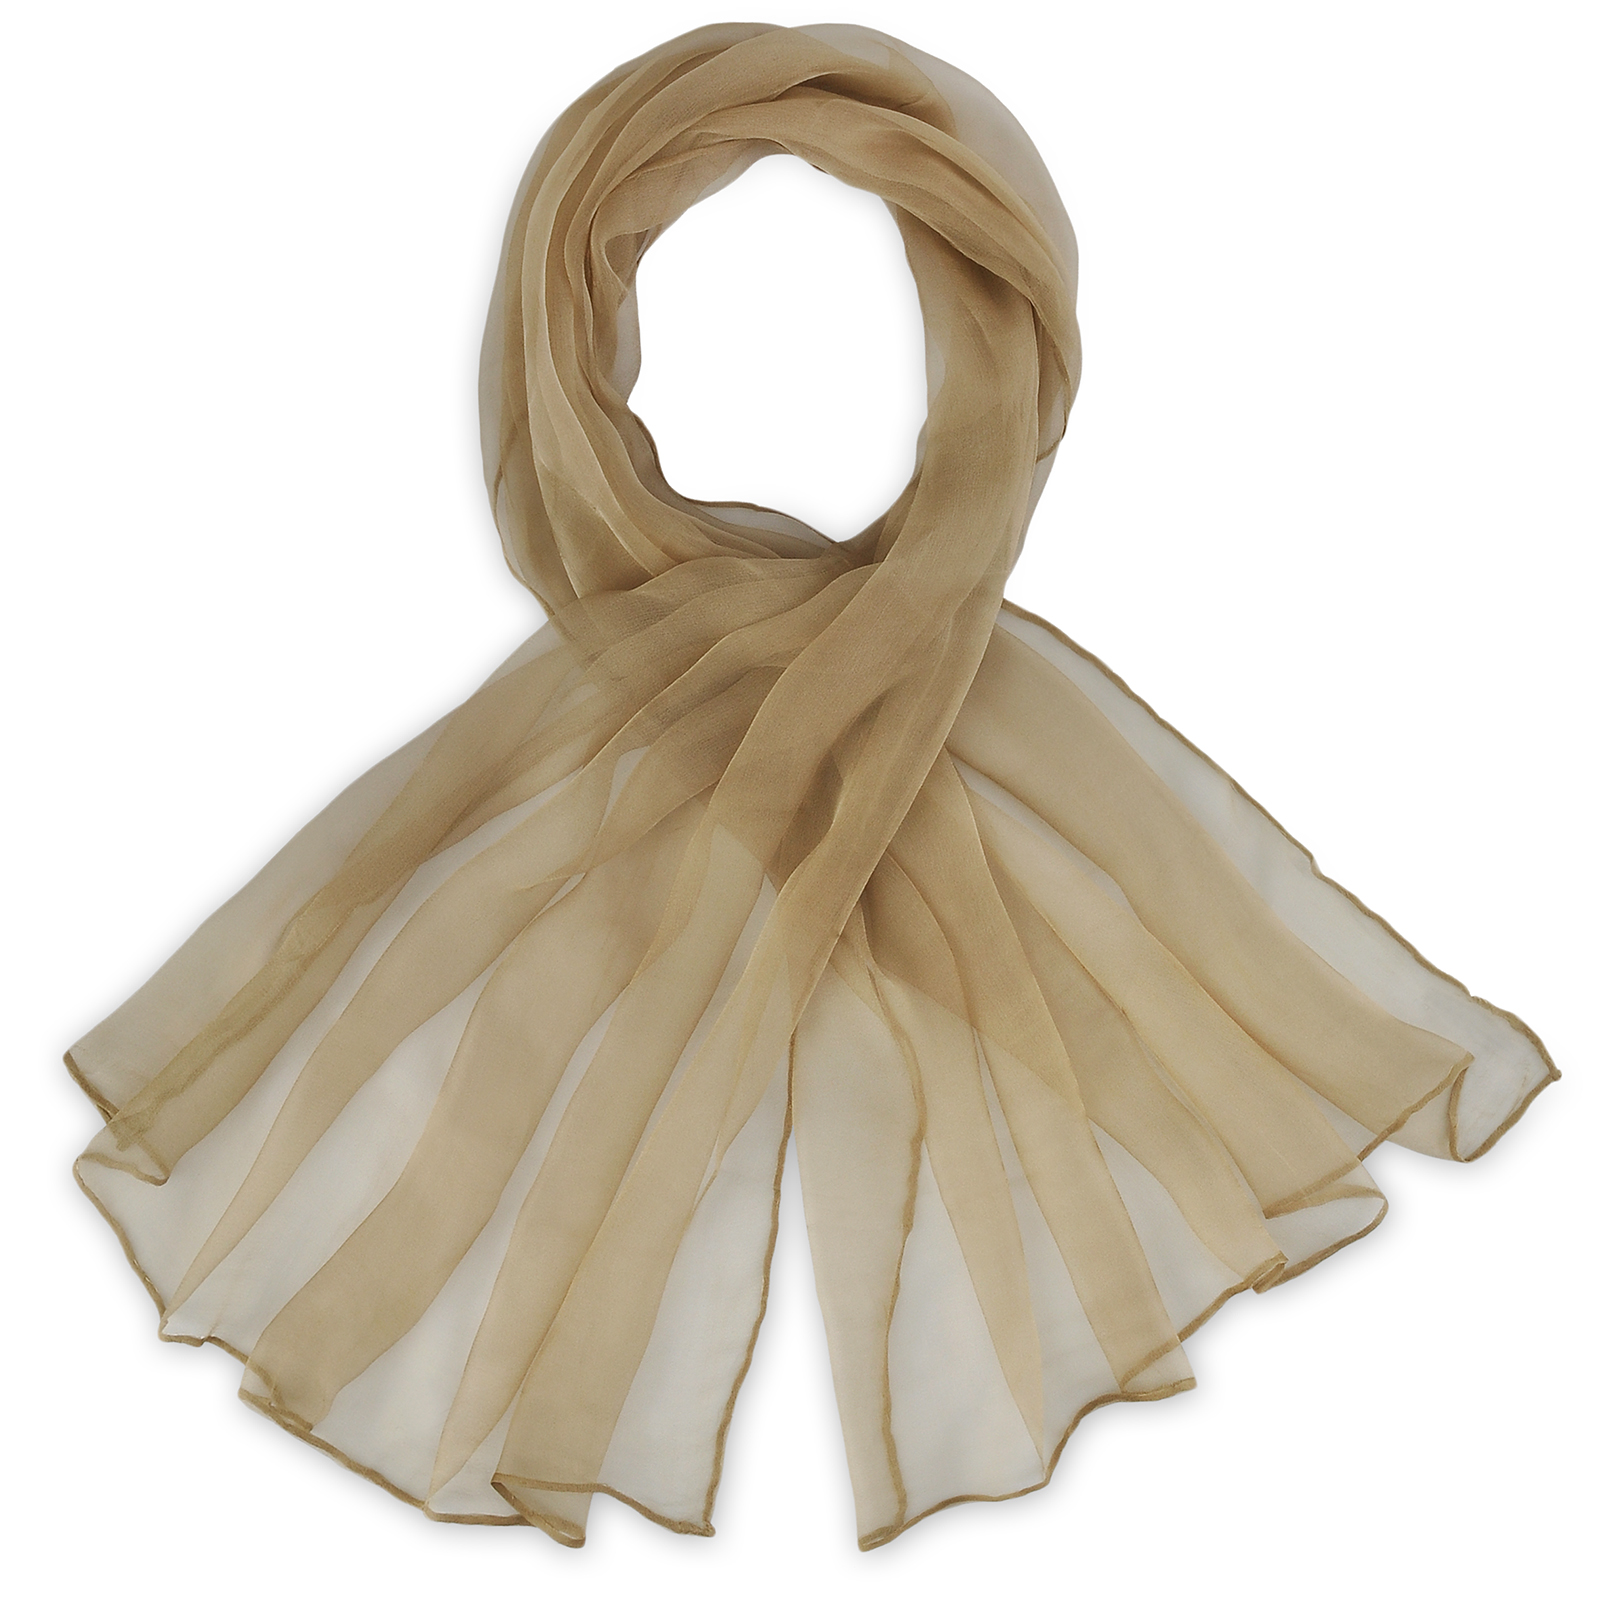 foulard-mousseline-soie-bistre-AT-03057-F16